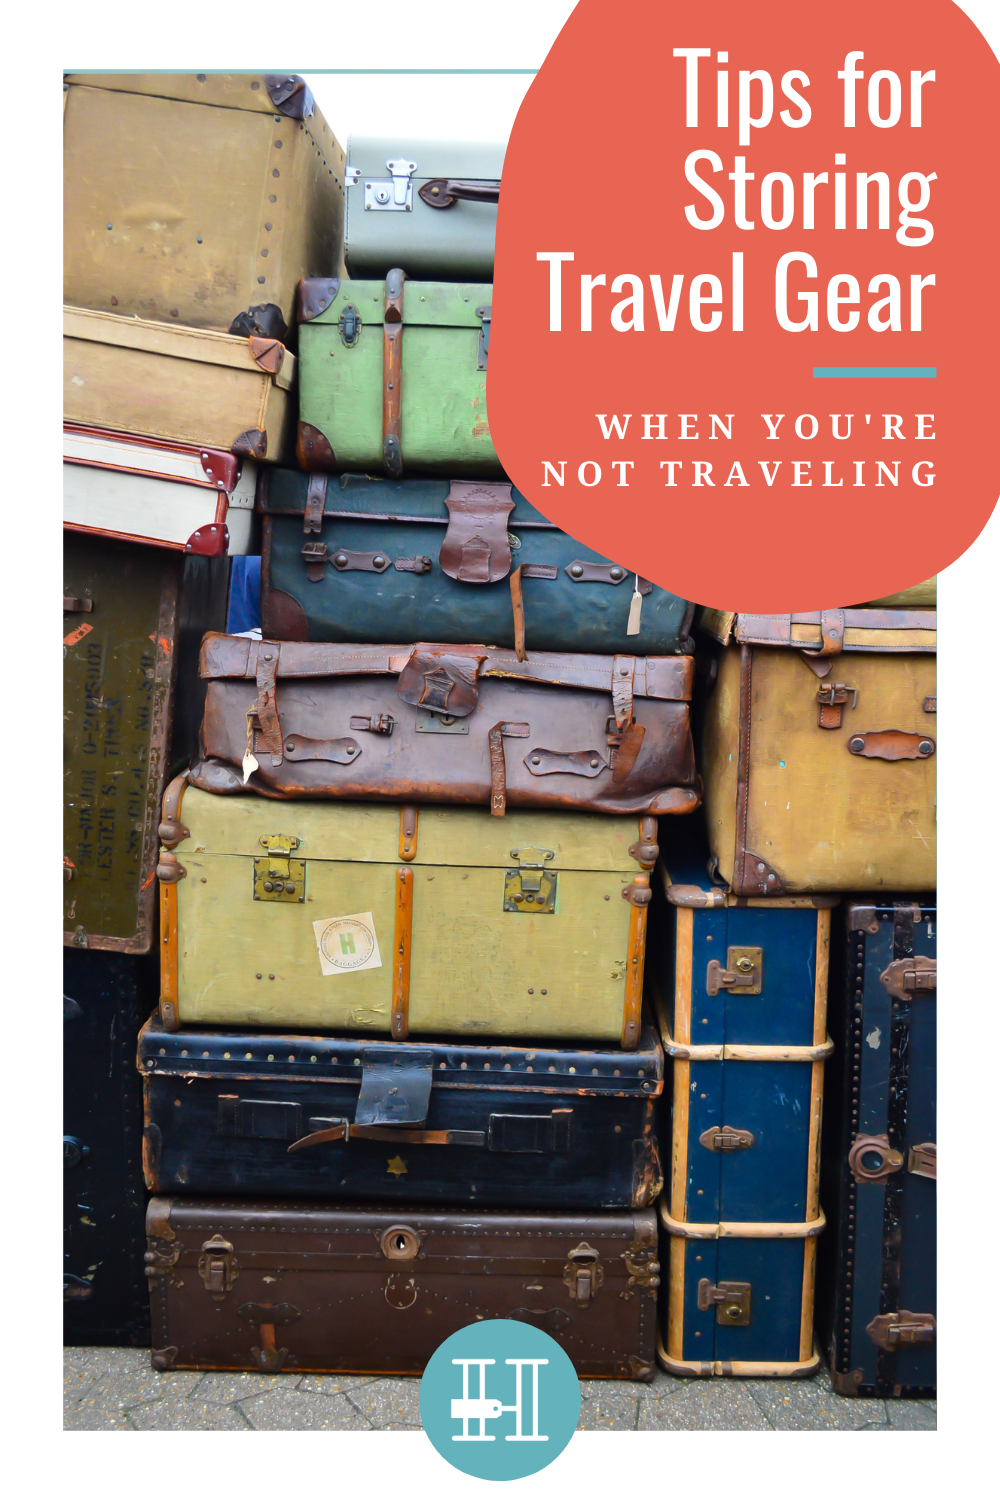 storing travel gear at home tips